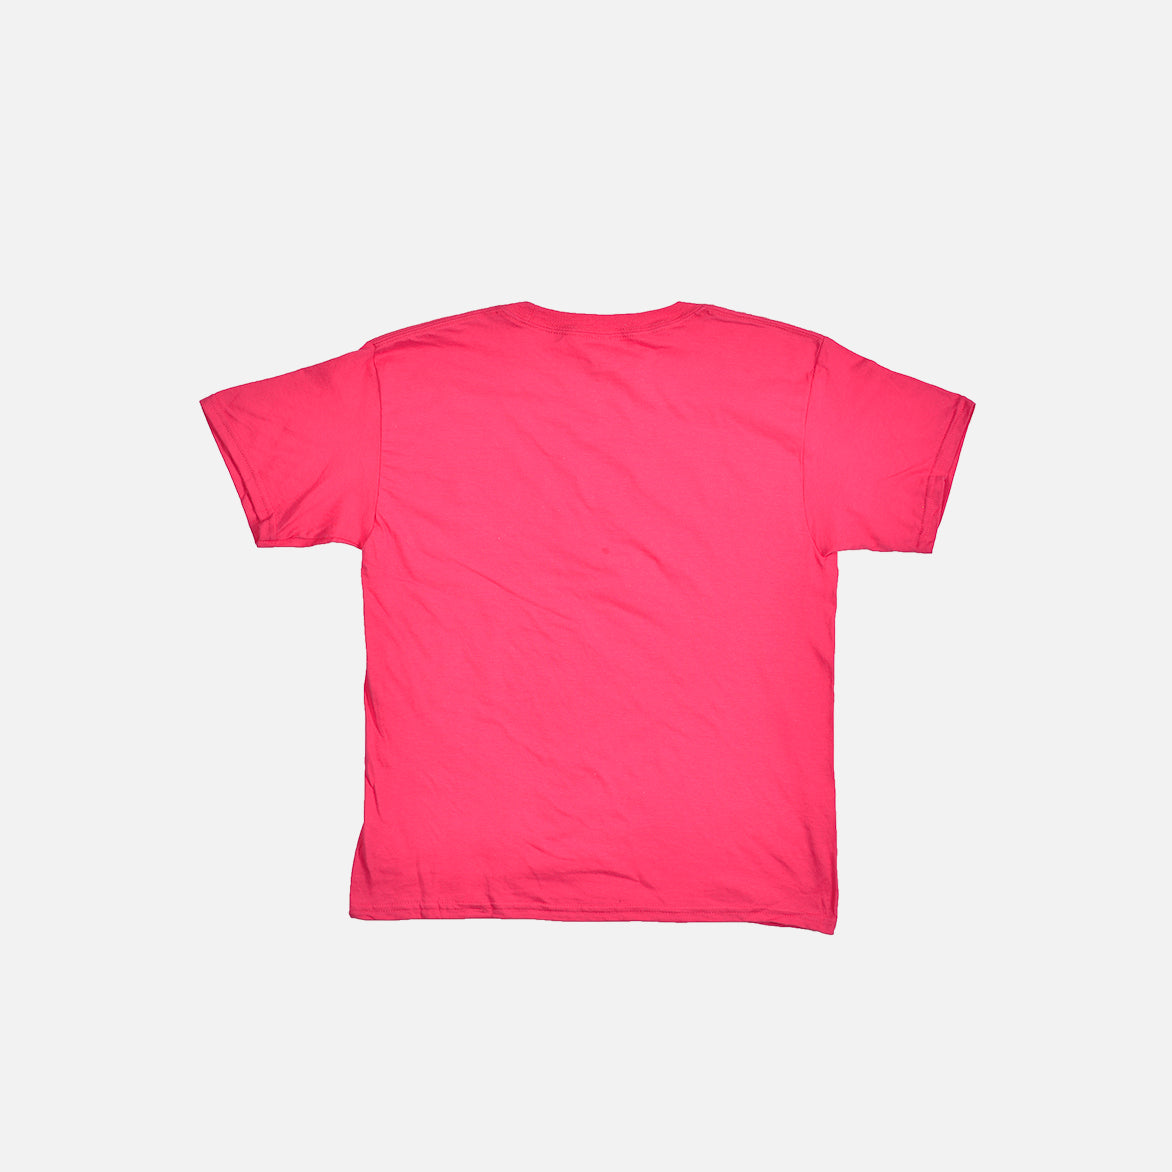 LAPSTONE KIDS UNITE TEE (YOUTH) - PINK